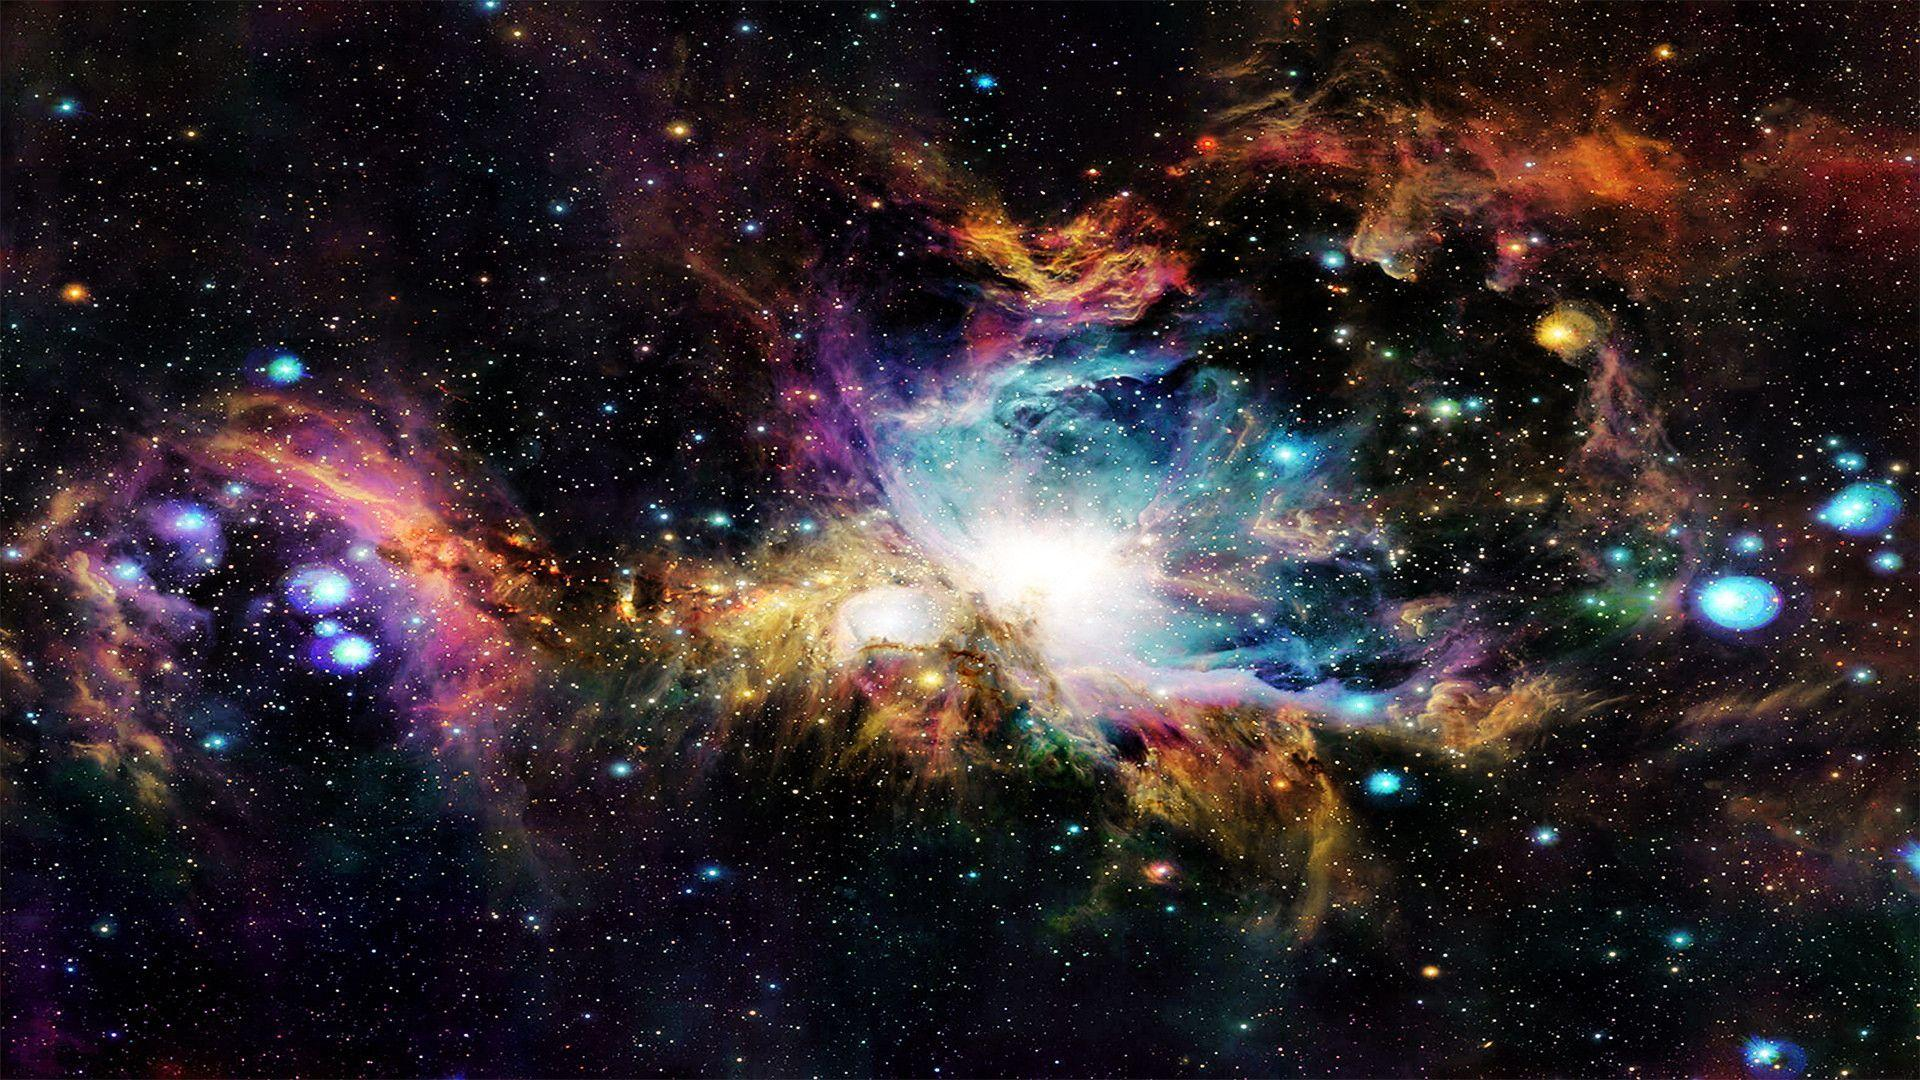 nebula hd wallpaper optical illusions - photo #21